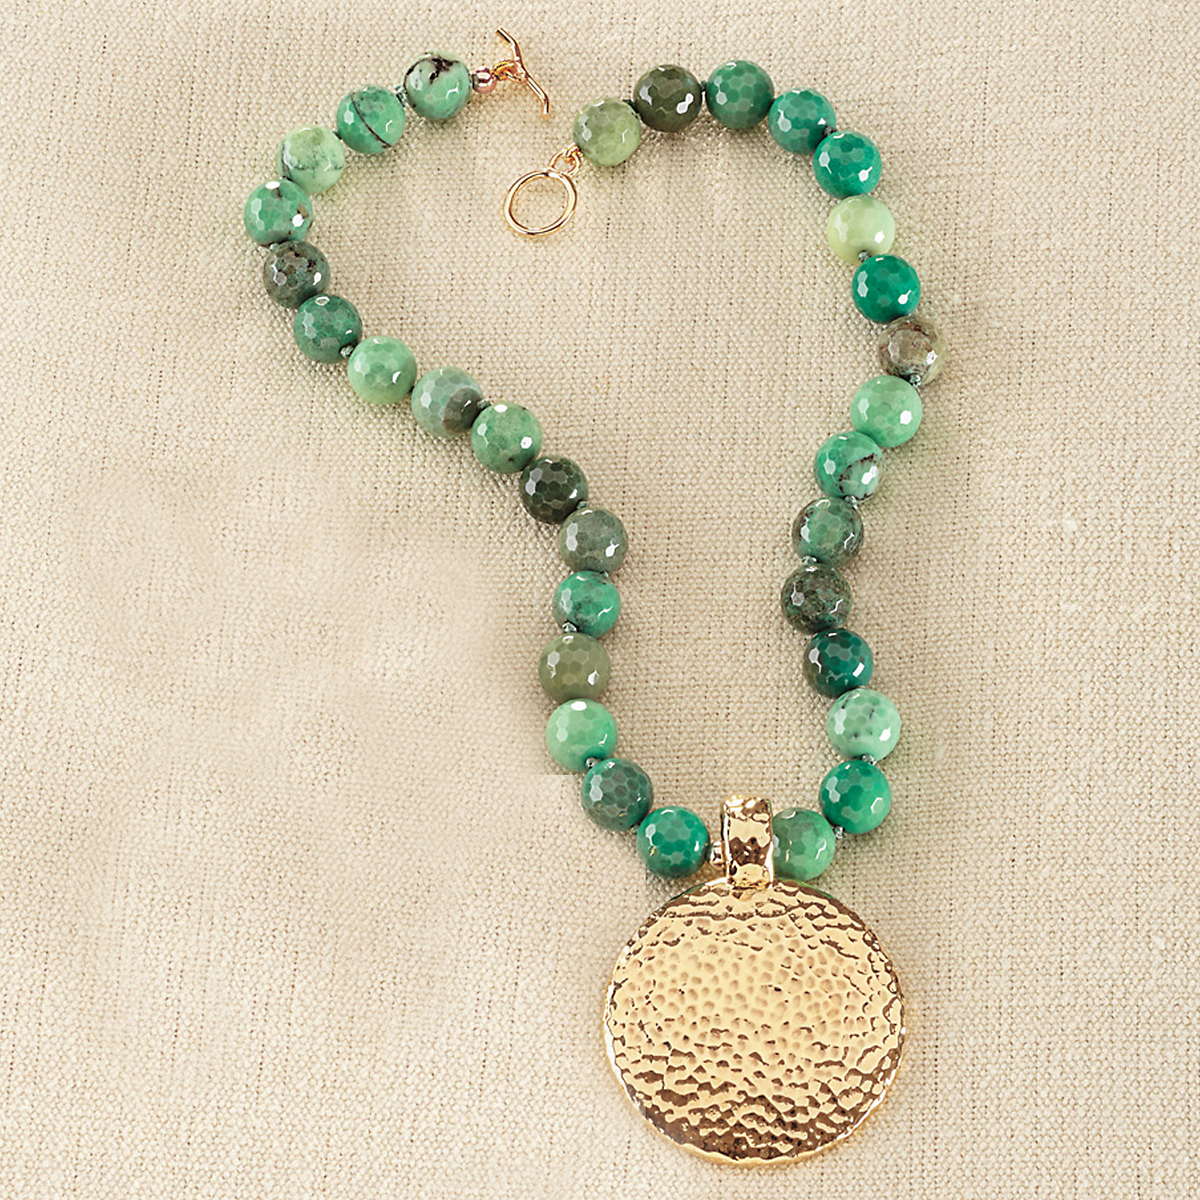 Simon Sebbag Vermeil Chrysoprase Necklace